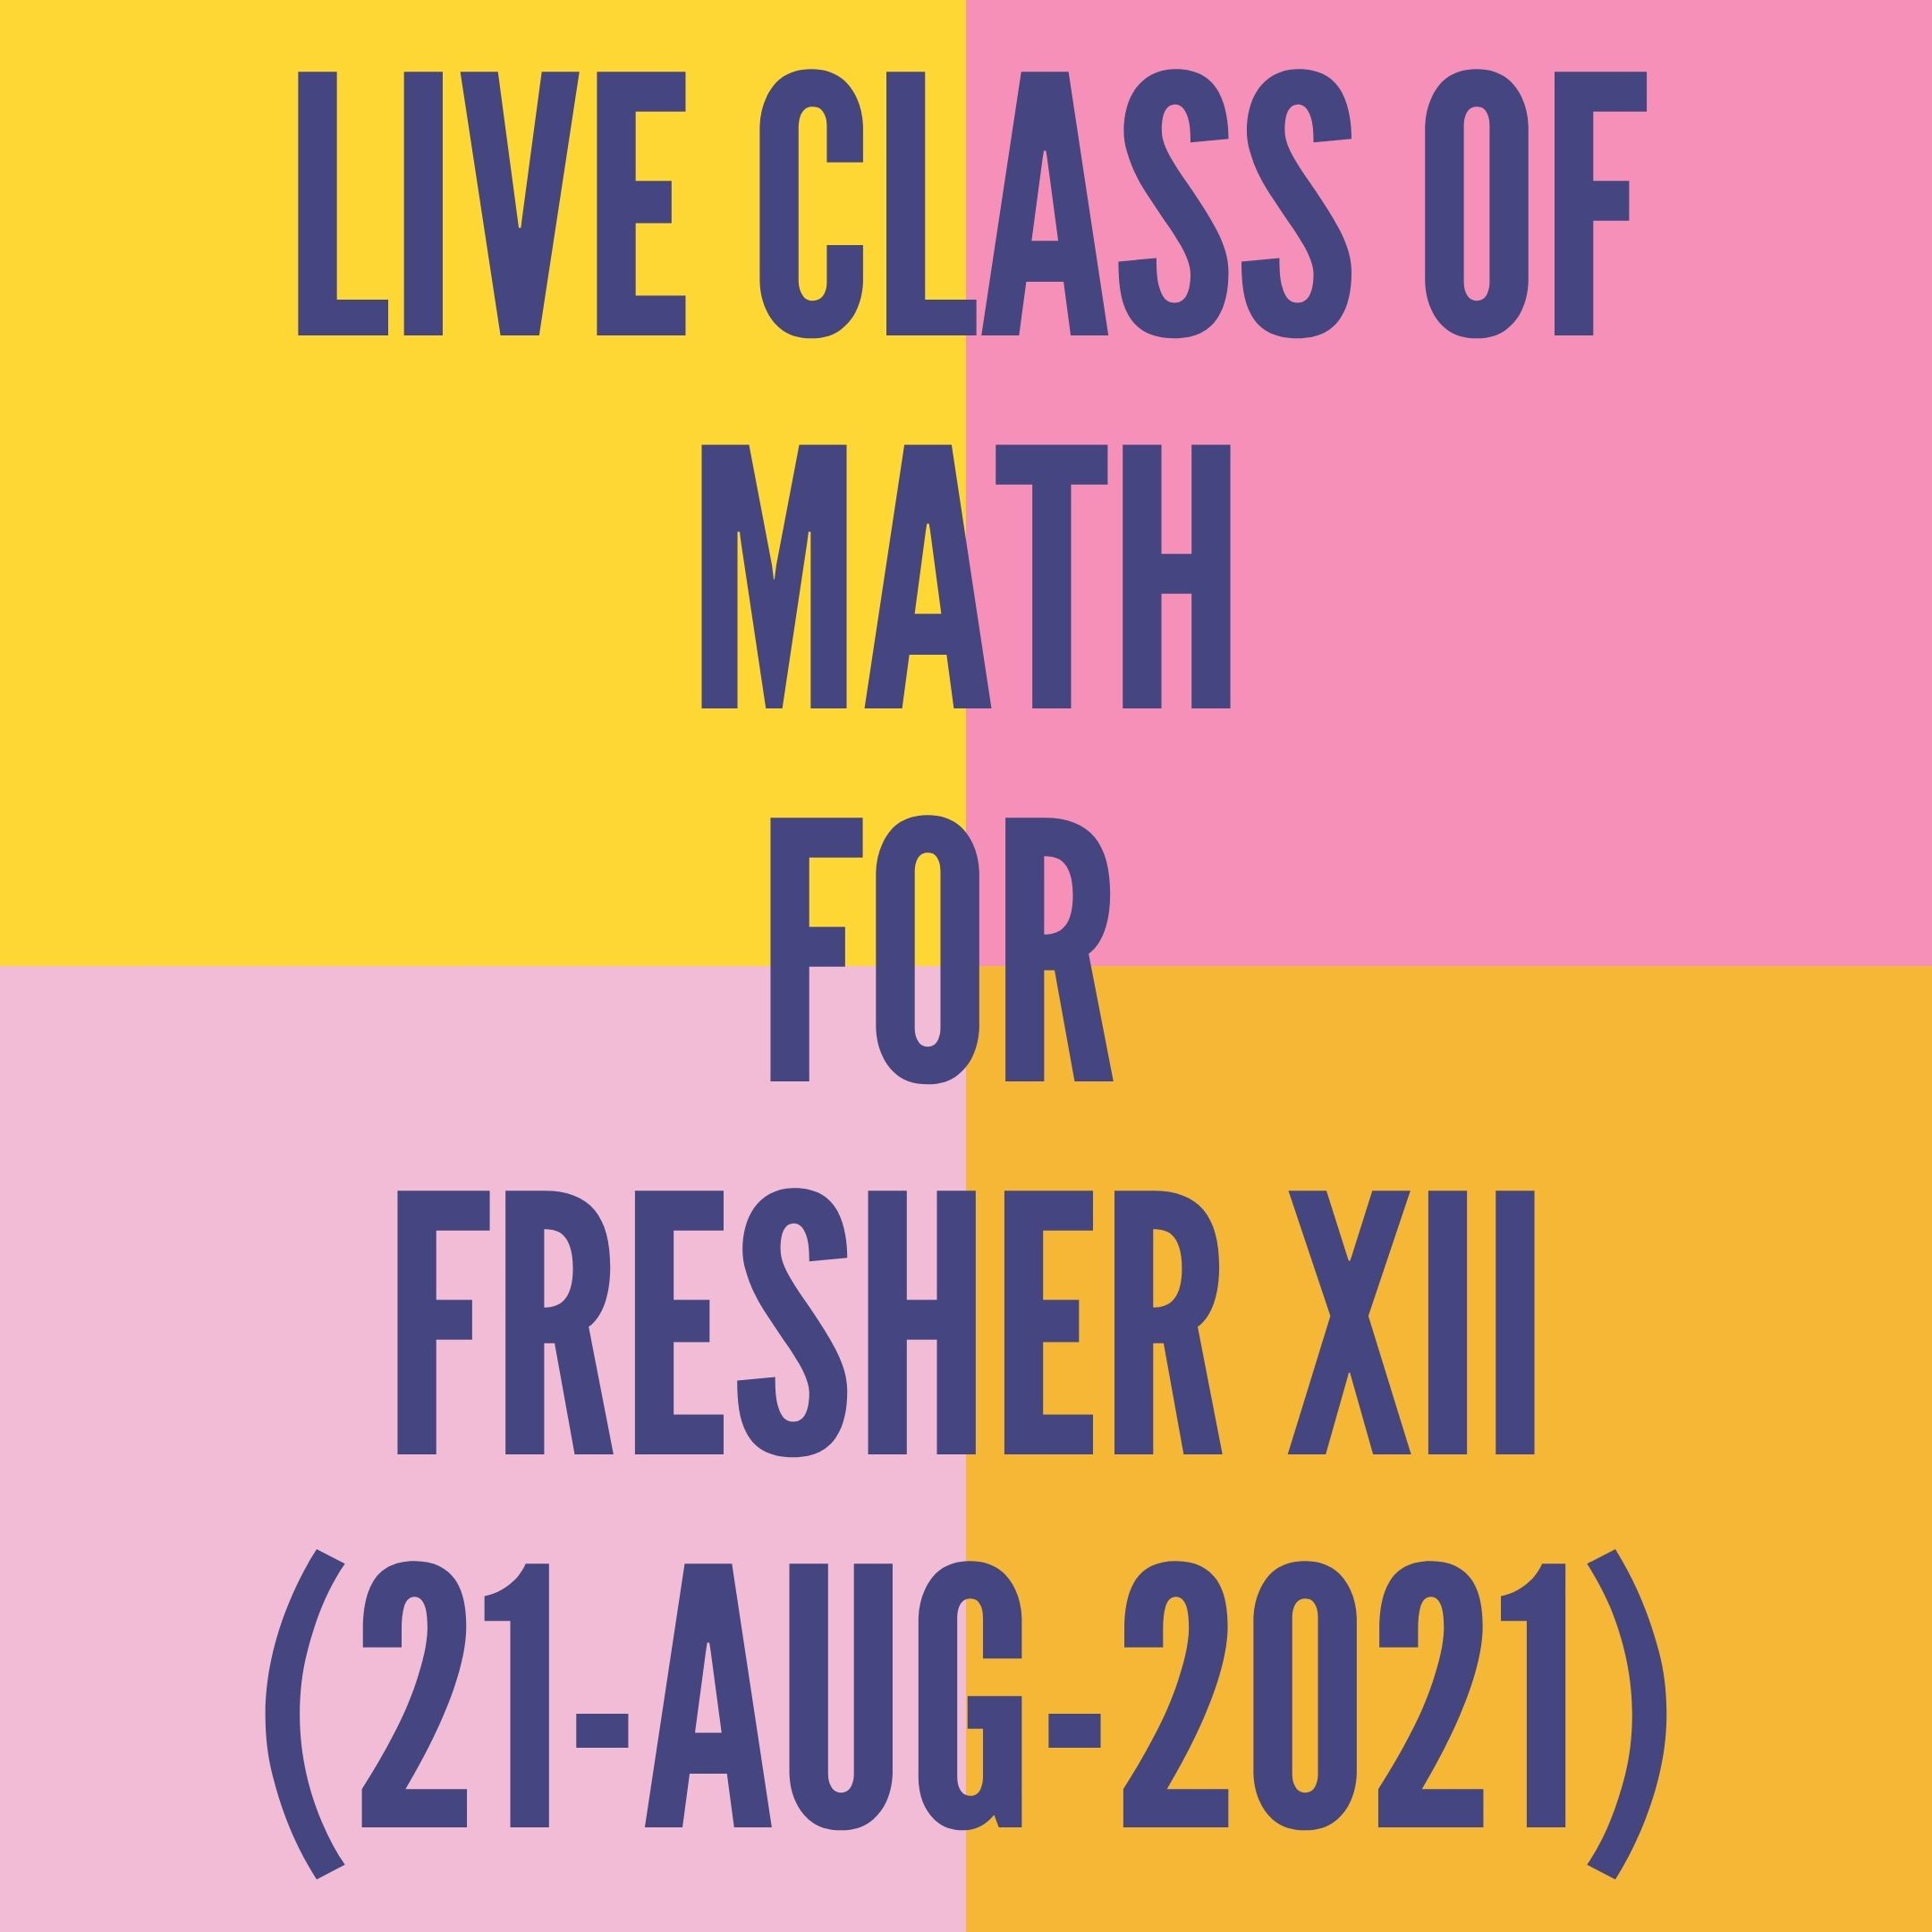 LIVE CLASS OF MATH FOR FRESHER (20-AUG-2021)